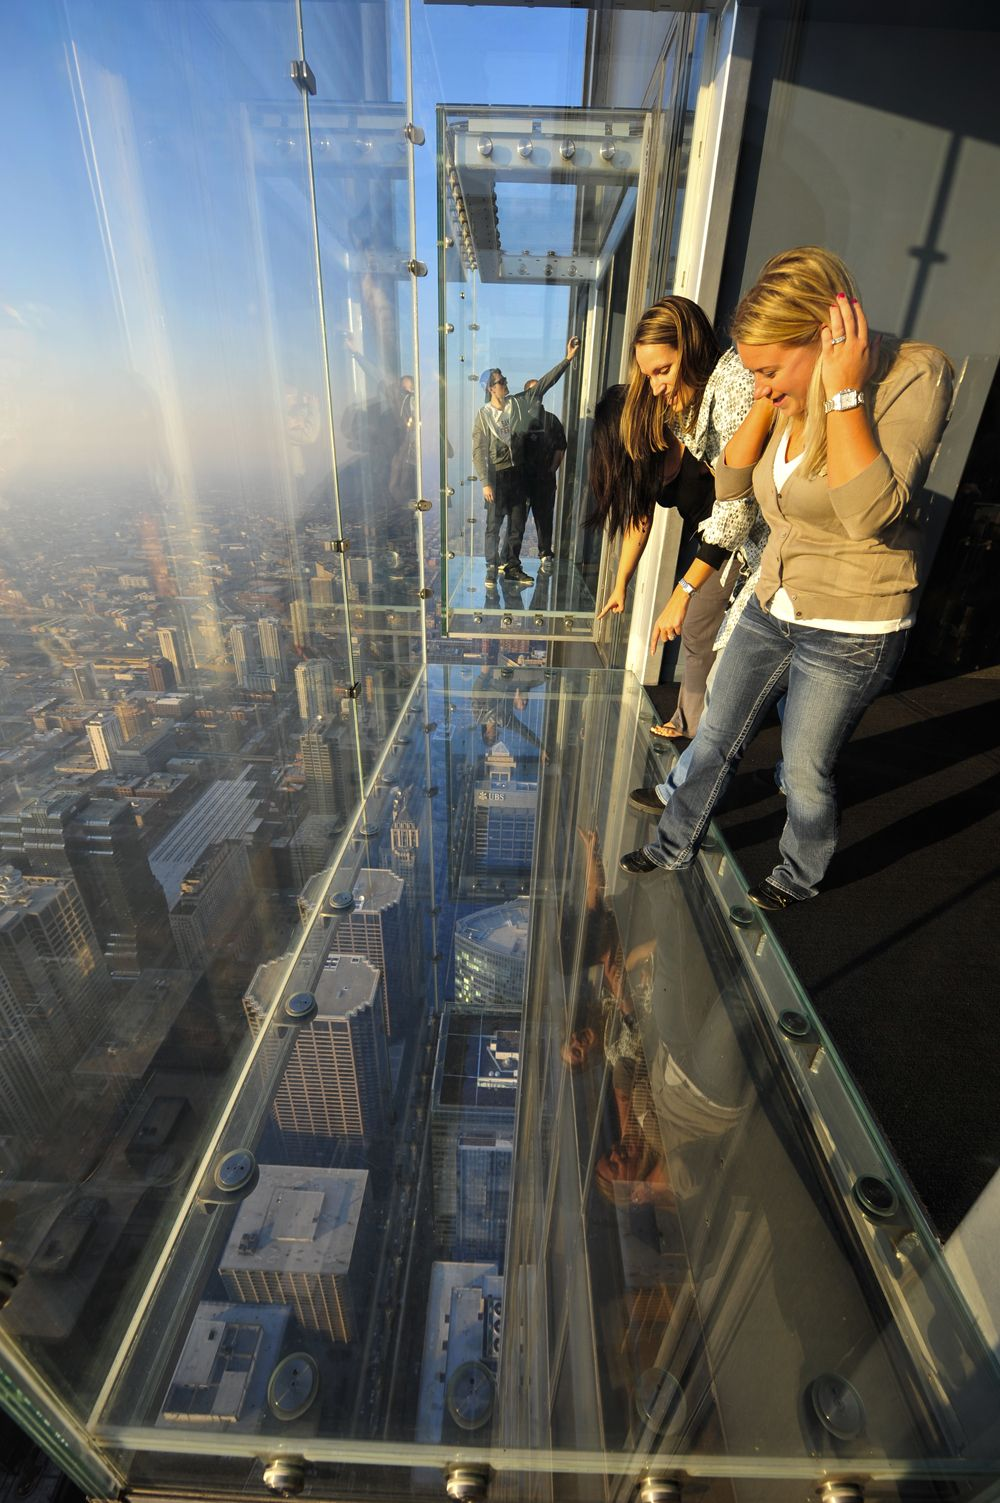 Willis Tower Chicago Il 1 353 Ft Glass Floor Tallest Observatory In America Chicago Travel Skydeck Chicago Willis Tower Skydeck